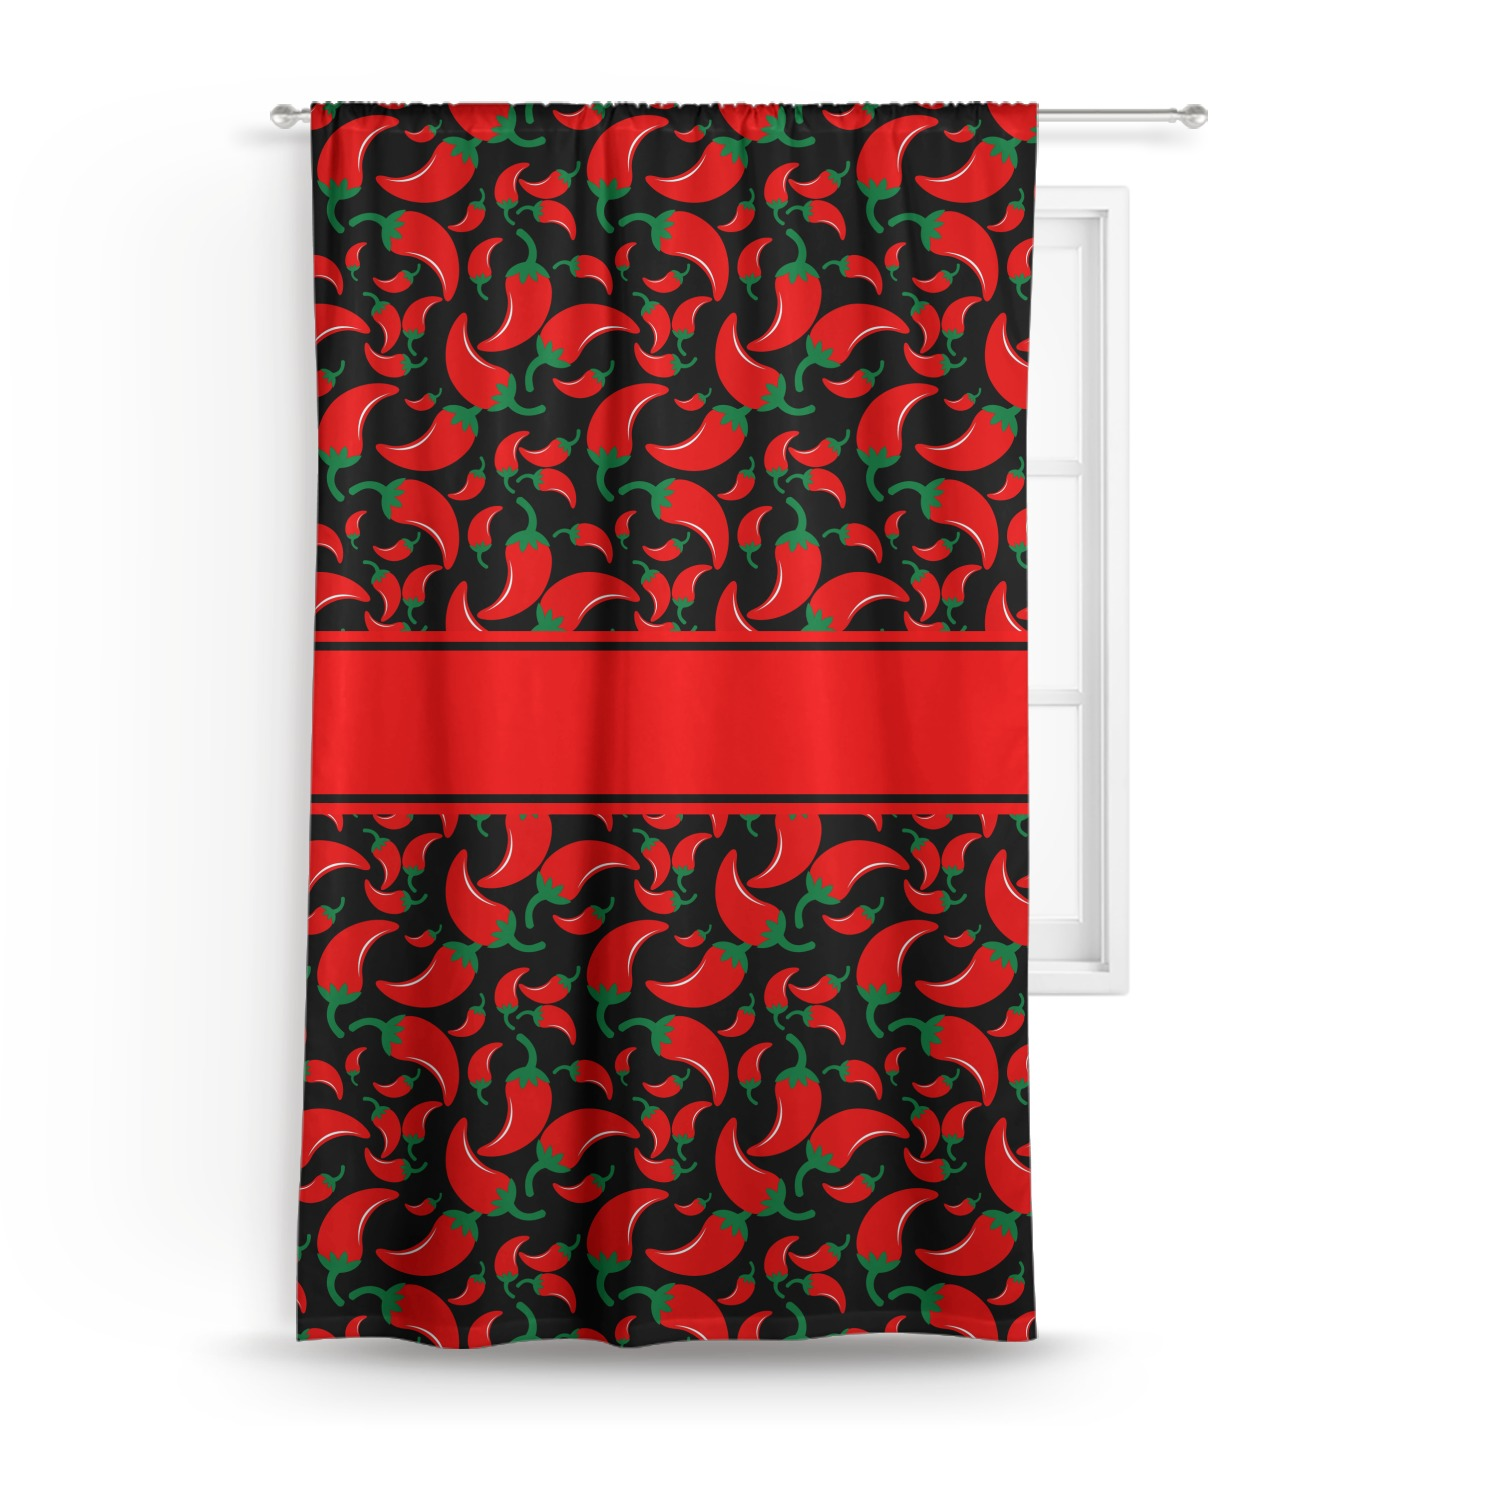 Chili Pepper Kitchen Curtains: Chili Peppers Curtain (Personalized)